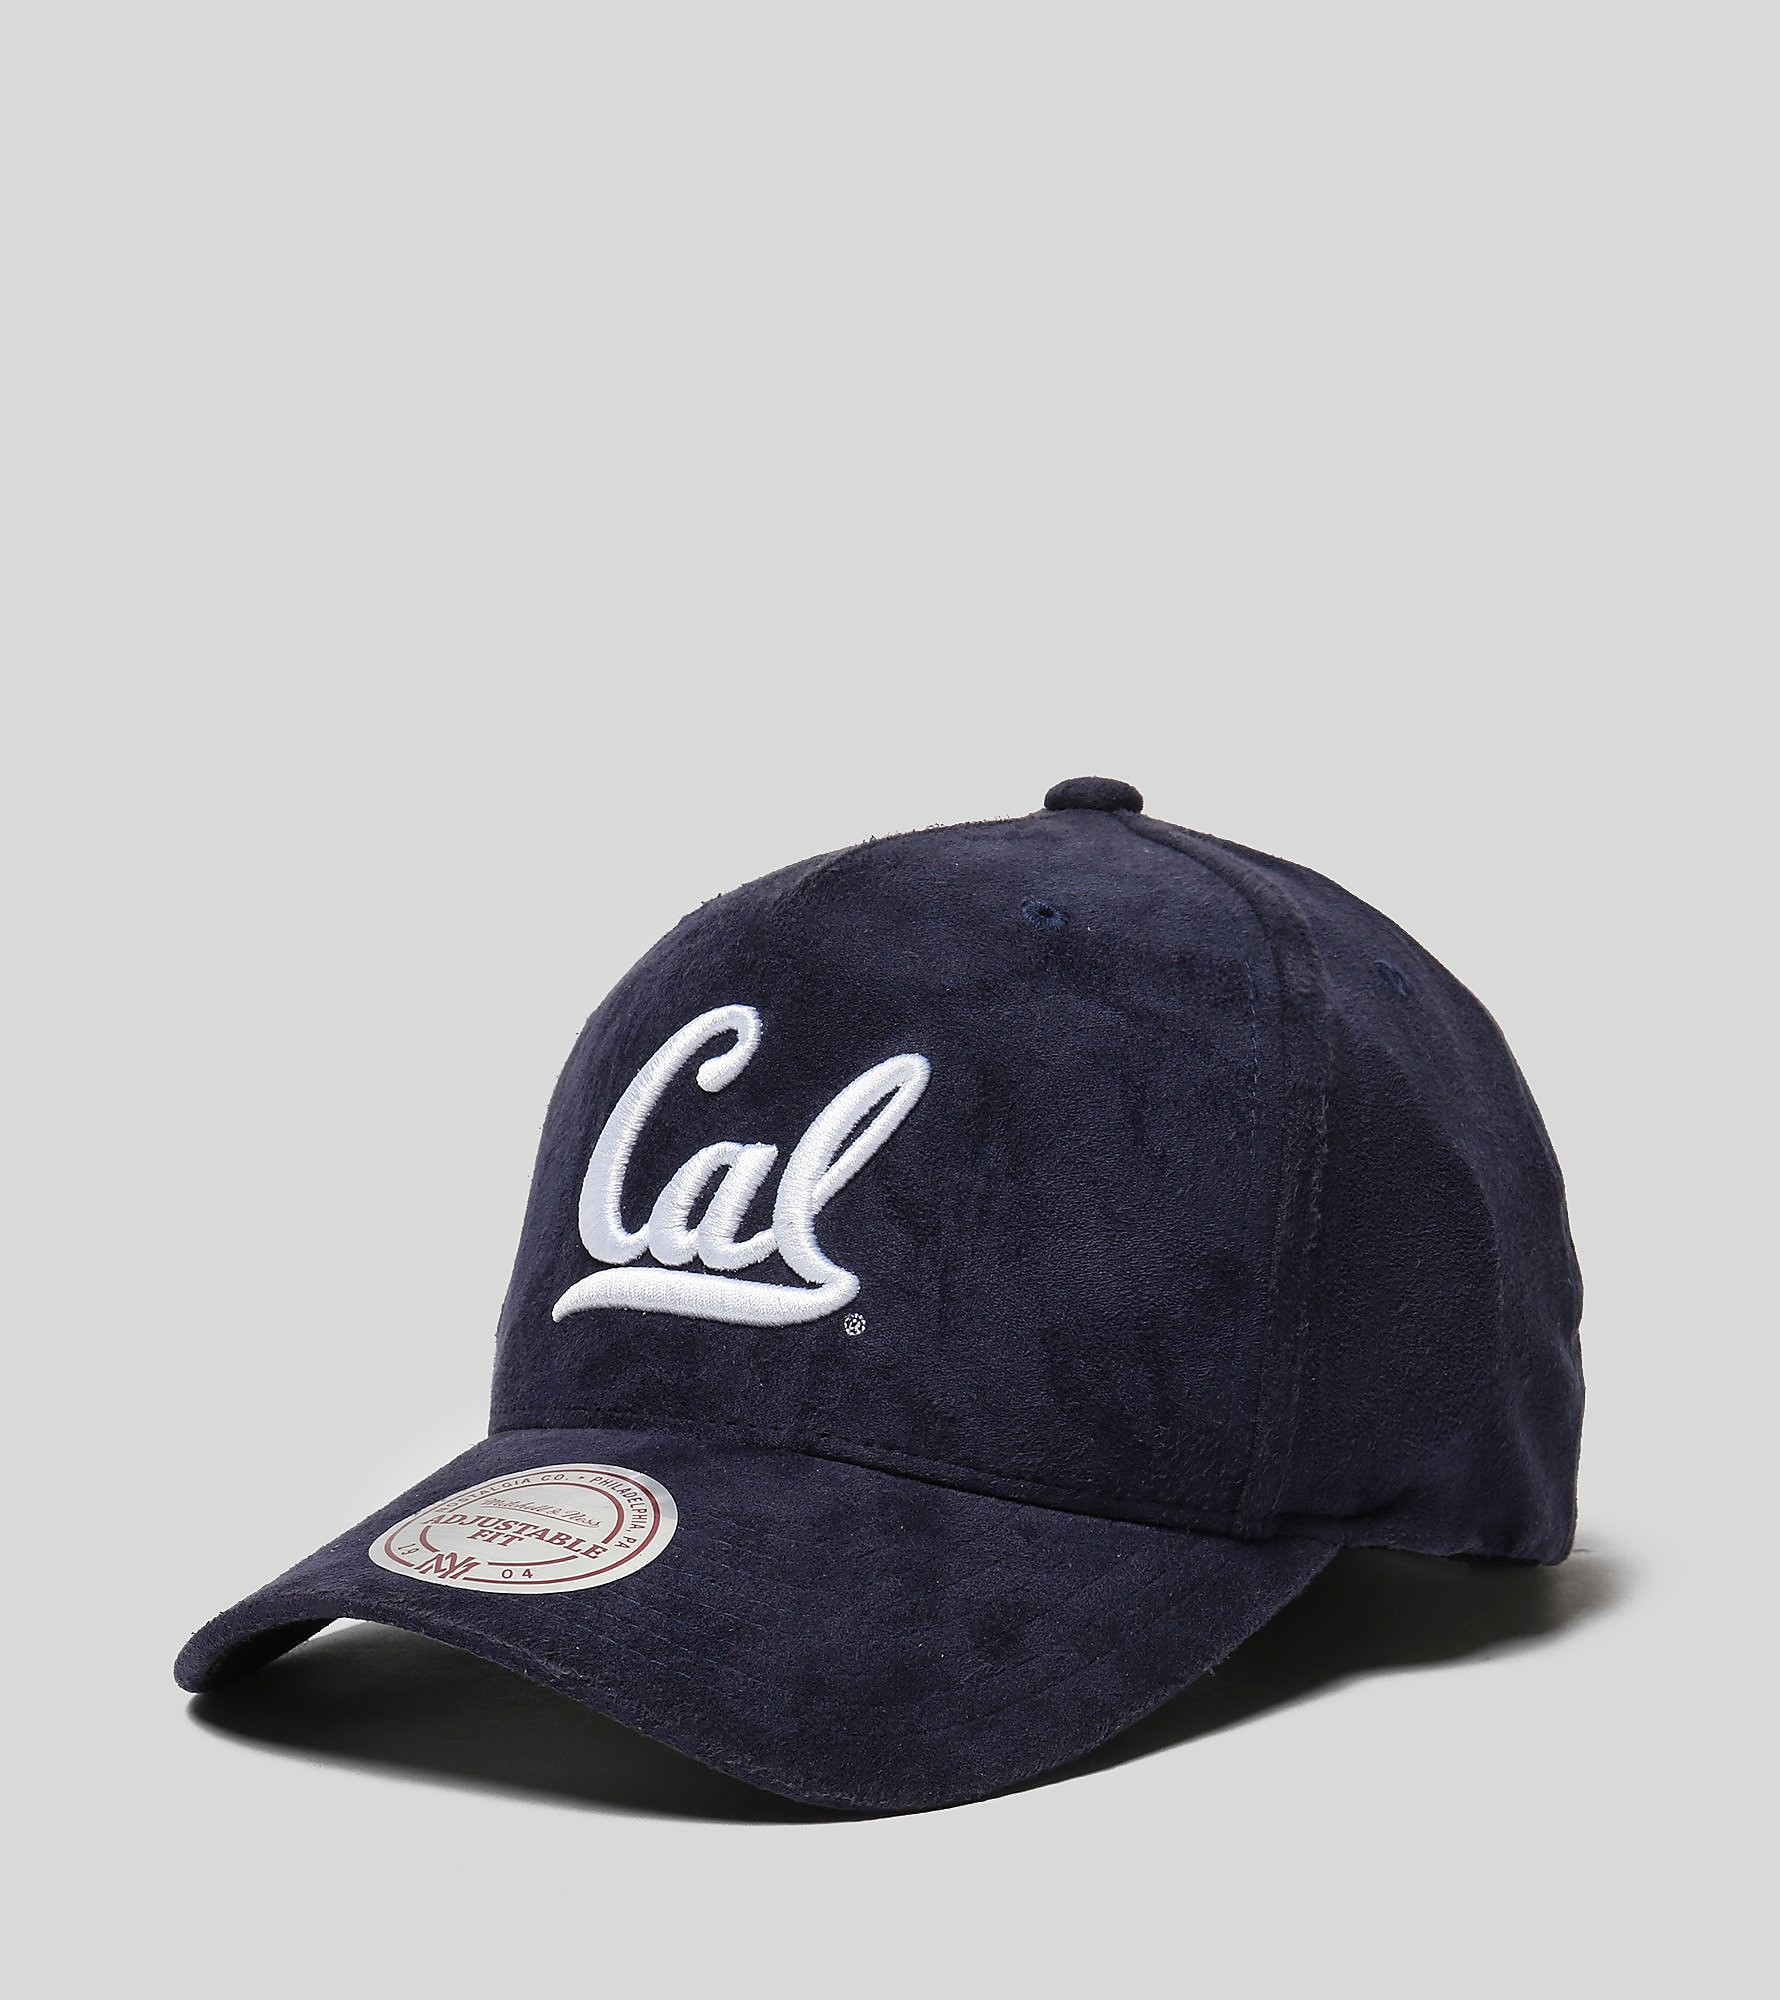 Mitchell & Ness Classic Cal Snapback